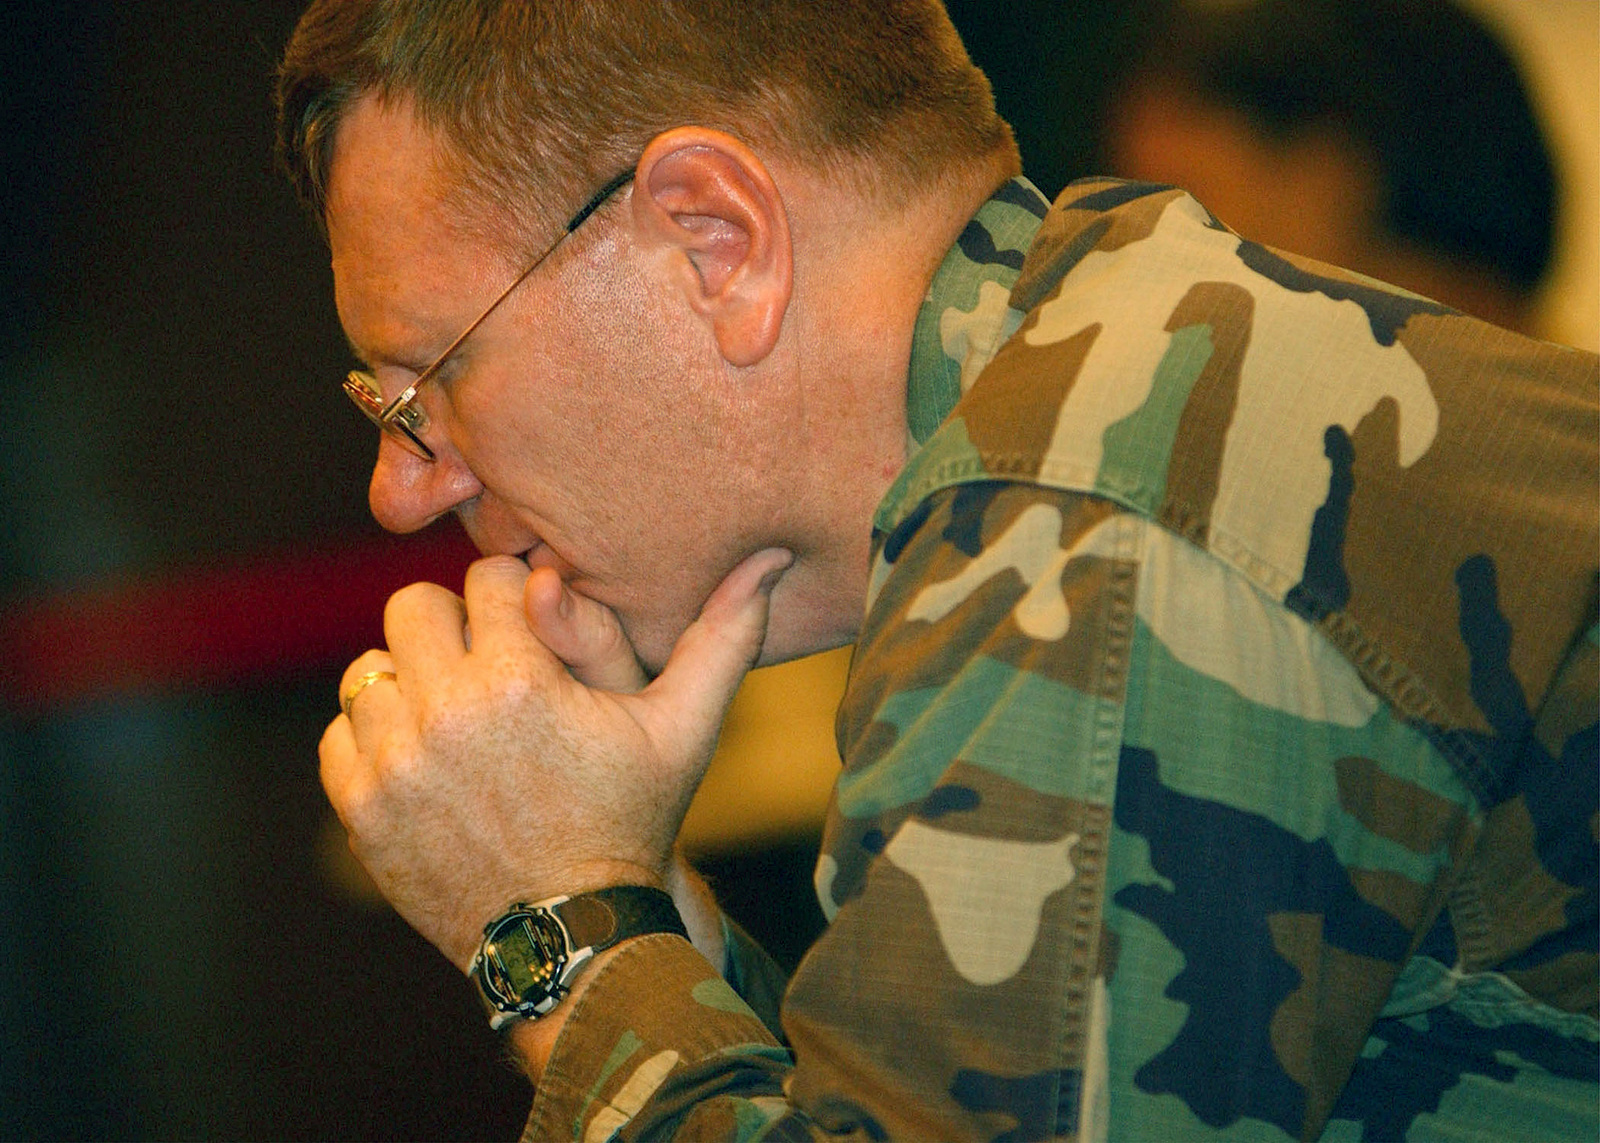 As part of President Bushs proclaimed National Day of Mourning, a military member prays during a service held at Incirlik Air Base, Turkey. The service held on September 14th, to honor the victims of the terrorist attacks on the World Trade Centers Twin Towers in New York City and at the Pentagon. Hijackers deliberately flew civilian airliners into the buildings, killing themselves, the passengers and thousands on the ground on 11 September 2001